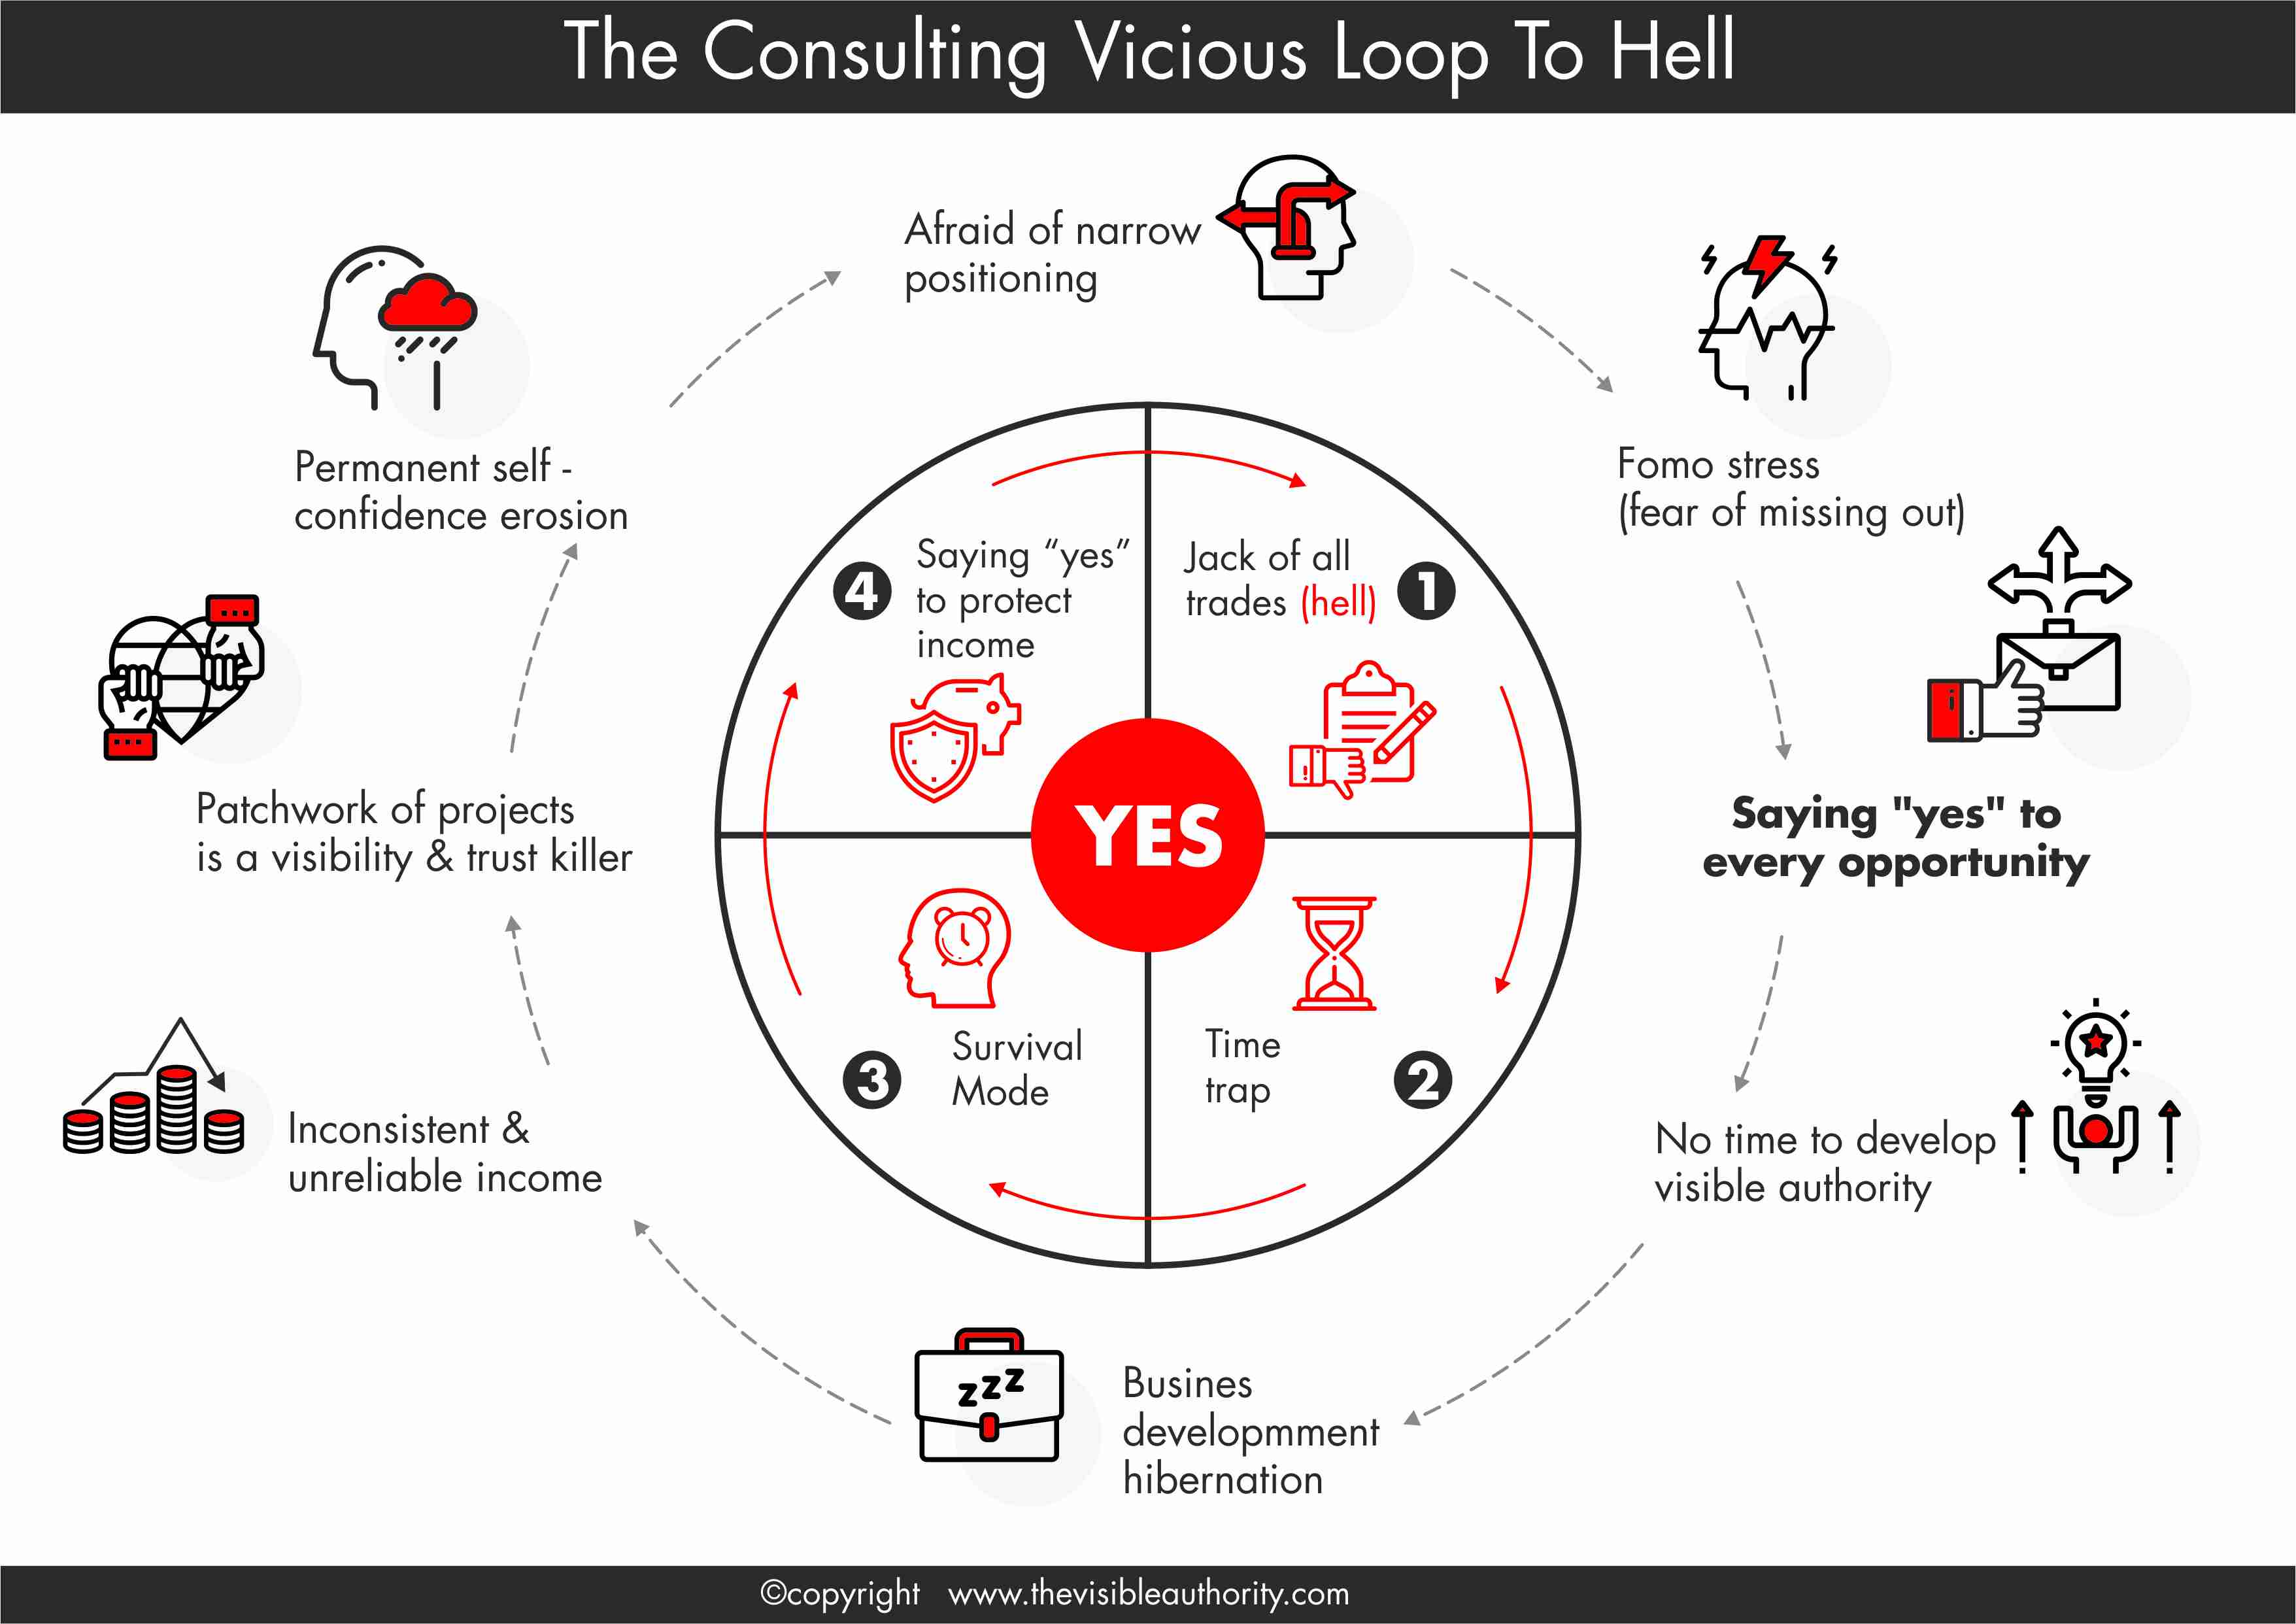 The Consulting Vicious Loop To Hell